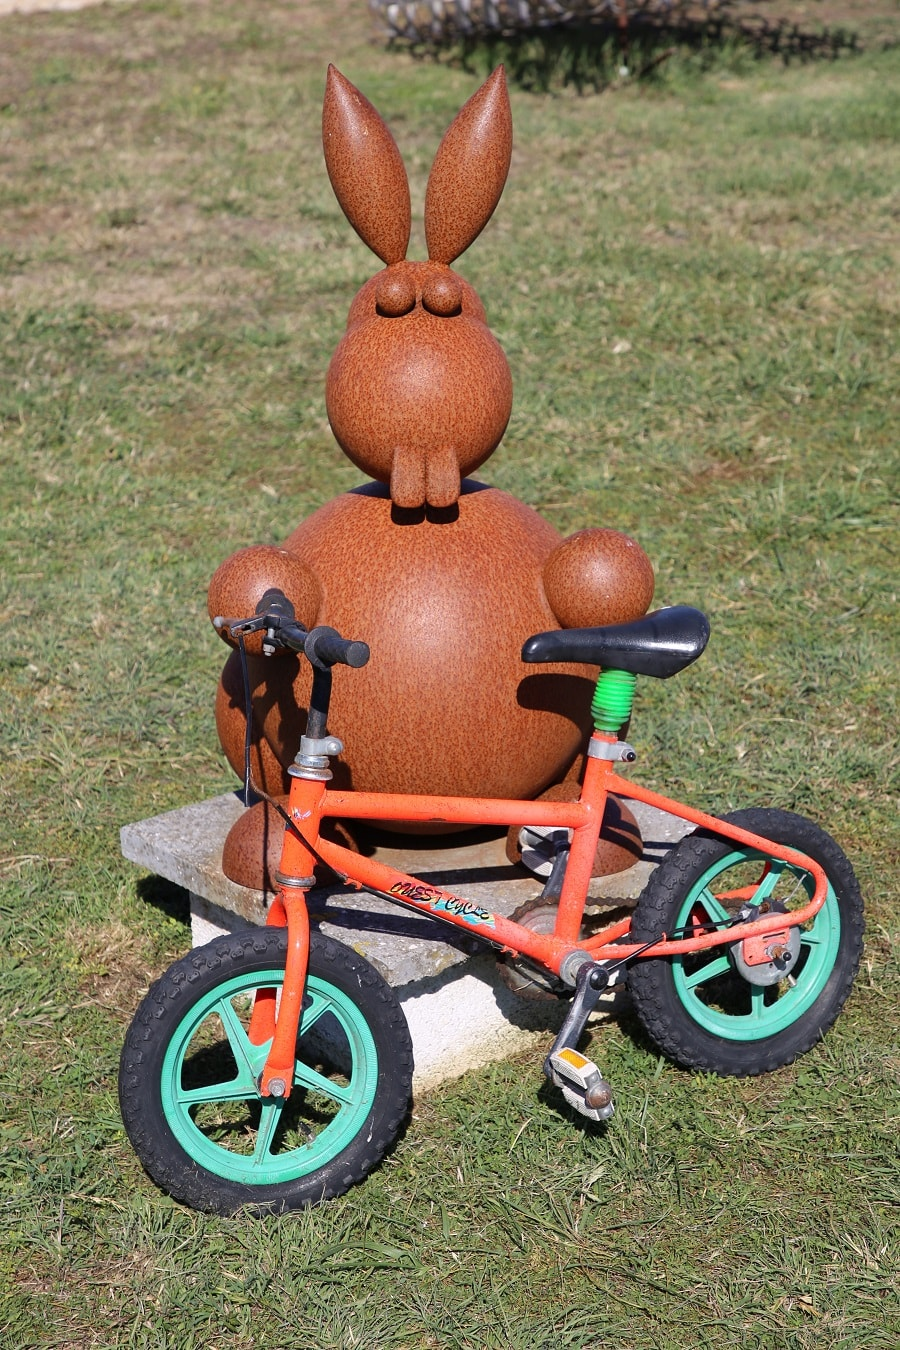 Tour de France 10 (2020). Bicycles installations. hare